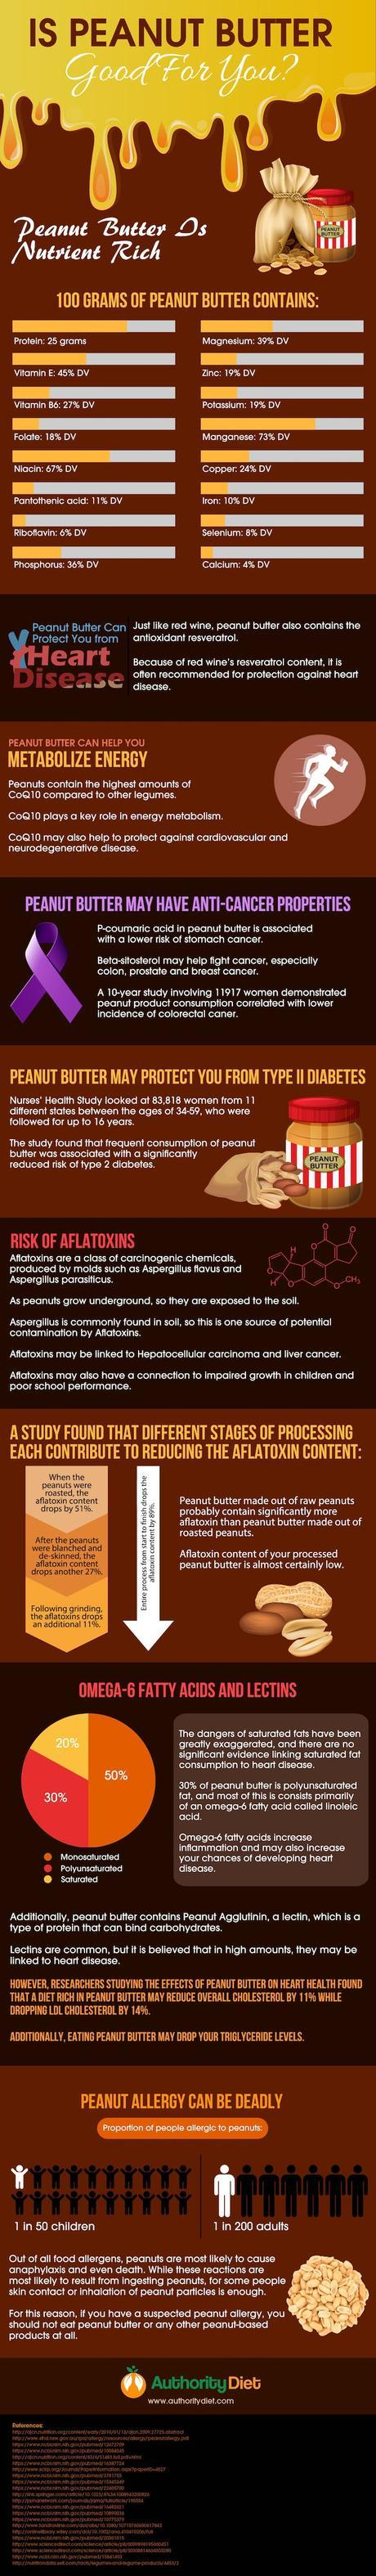 Is Peanut Butter Good or Bad for Your Health? Nutrition Facts